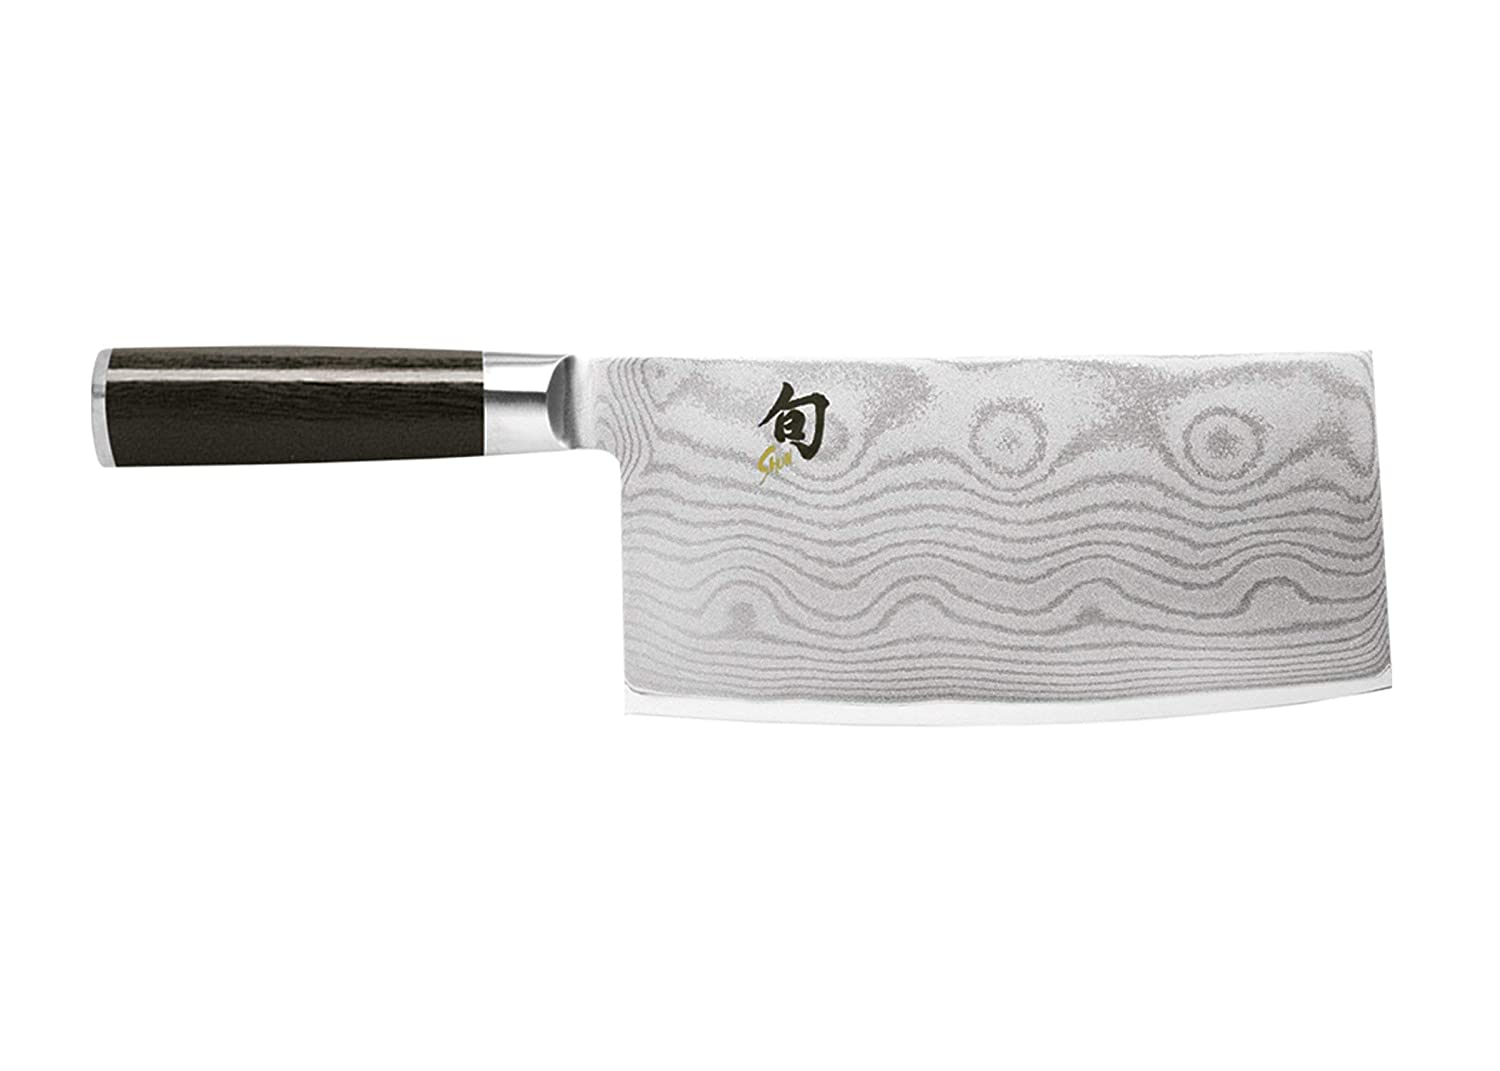 Shun DM0712 Classic 7-Inch Chinese Vegetable Cleaver